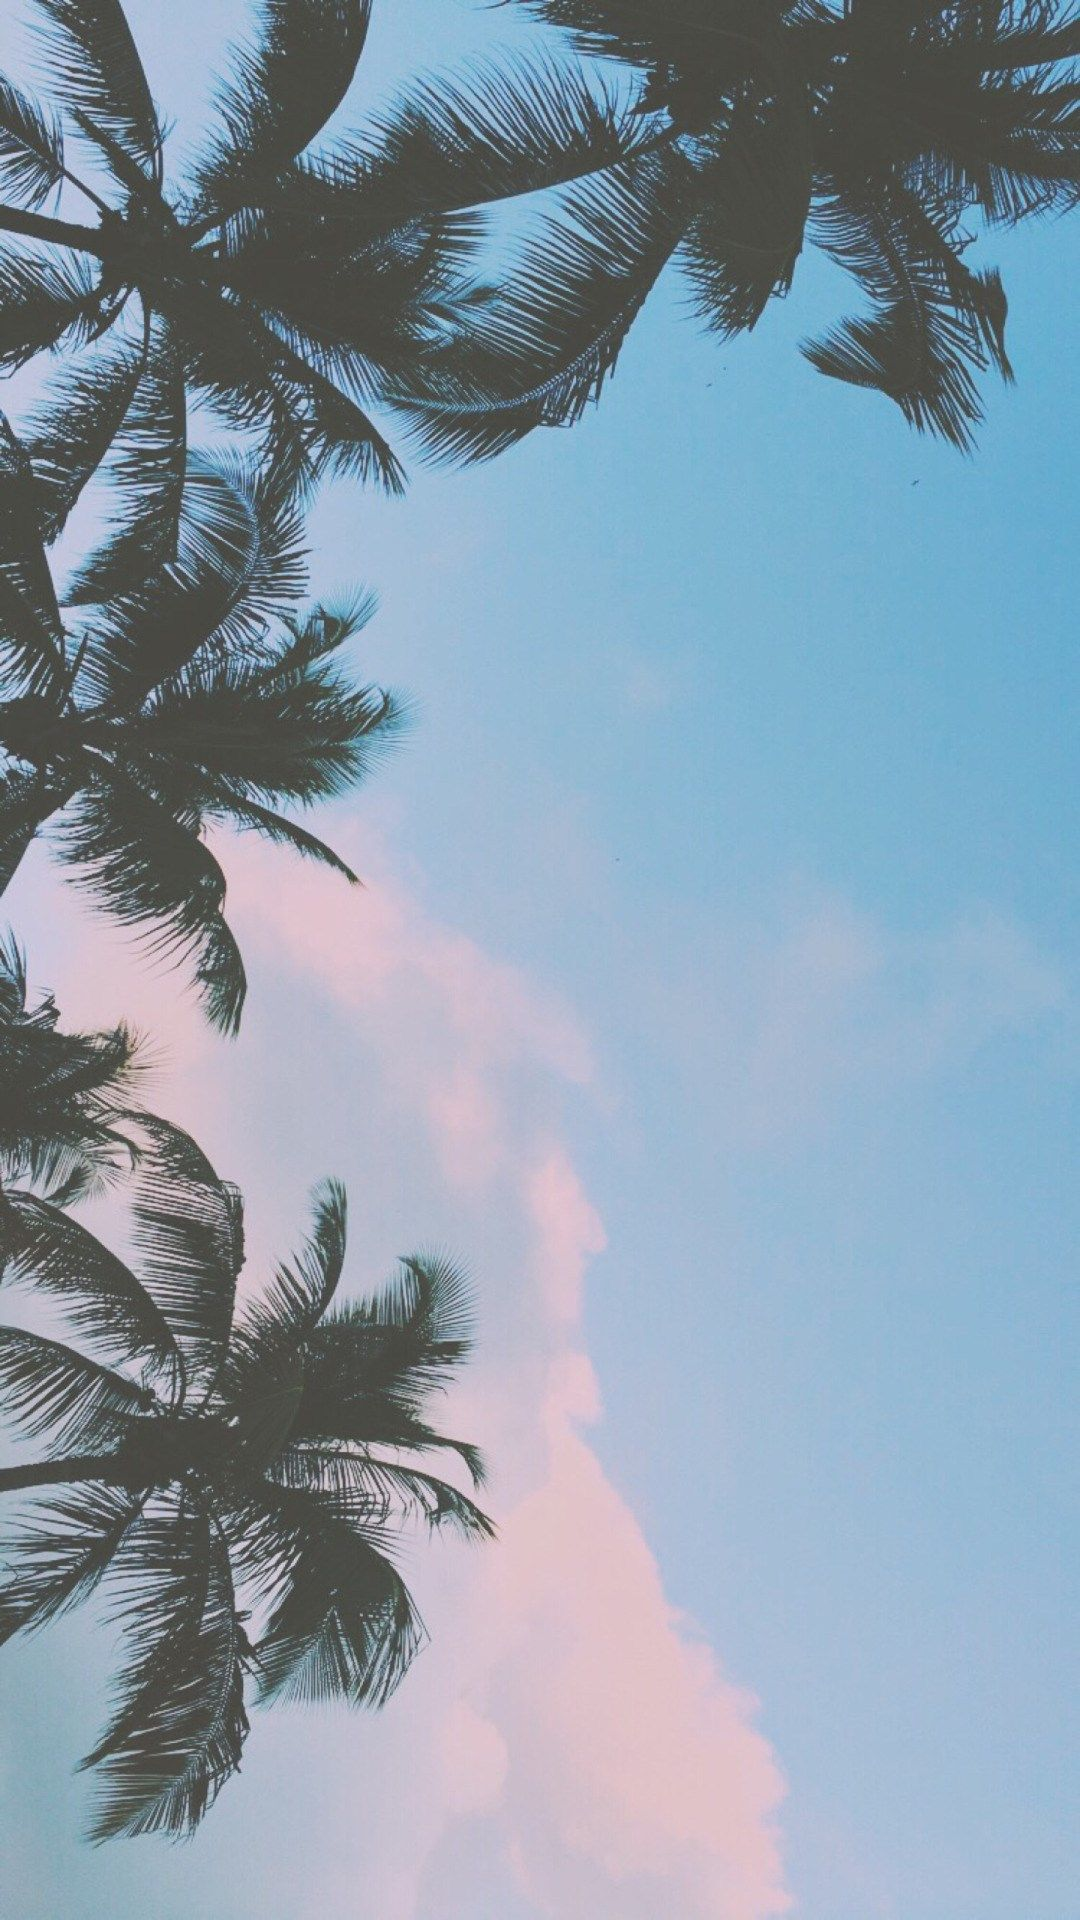 Tumblr iphone wallpaper pastel grunge - Awesome Iphone Wallpaper Swag Tumblr 39